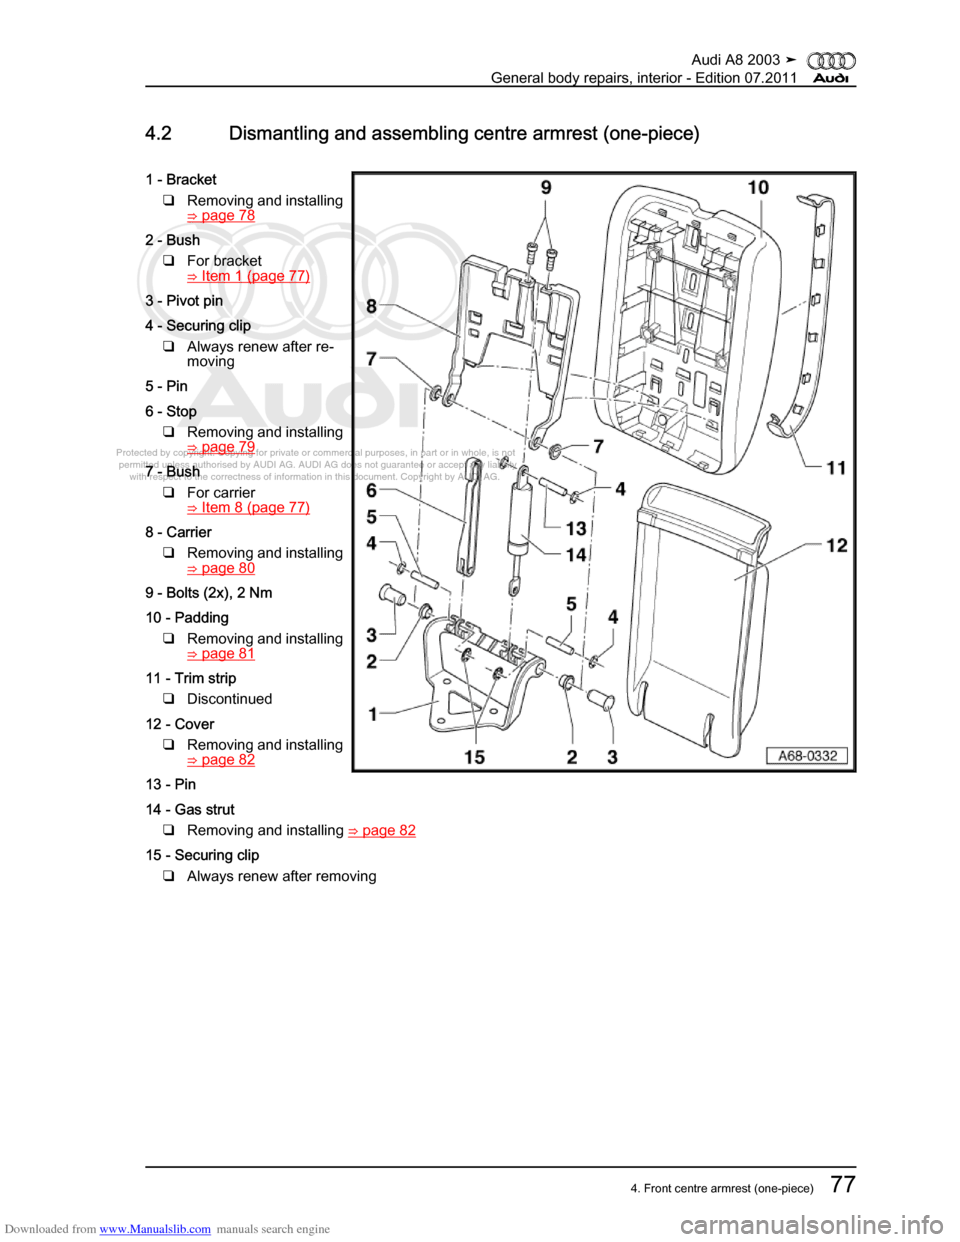 AUDI A8 2003 D3 / 2.G General System Manual Online (401 Pages)